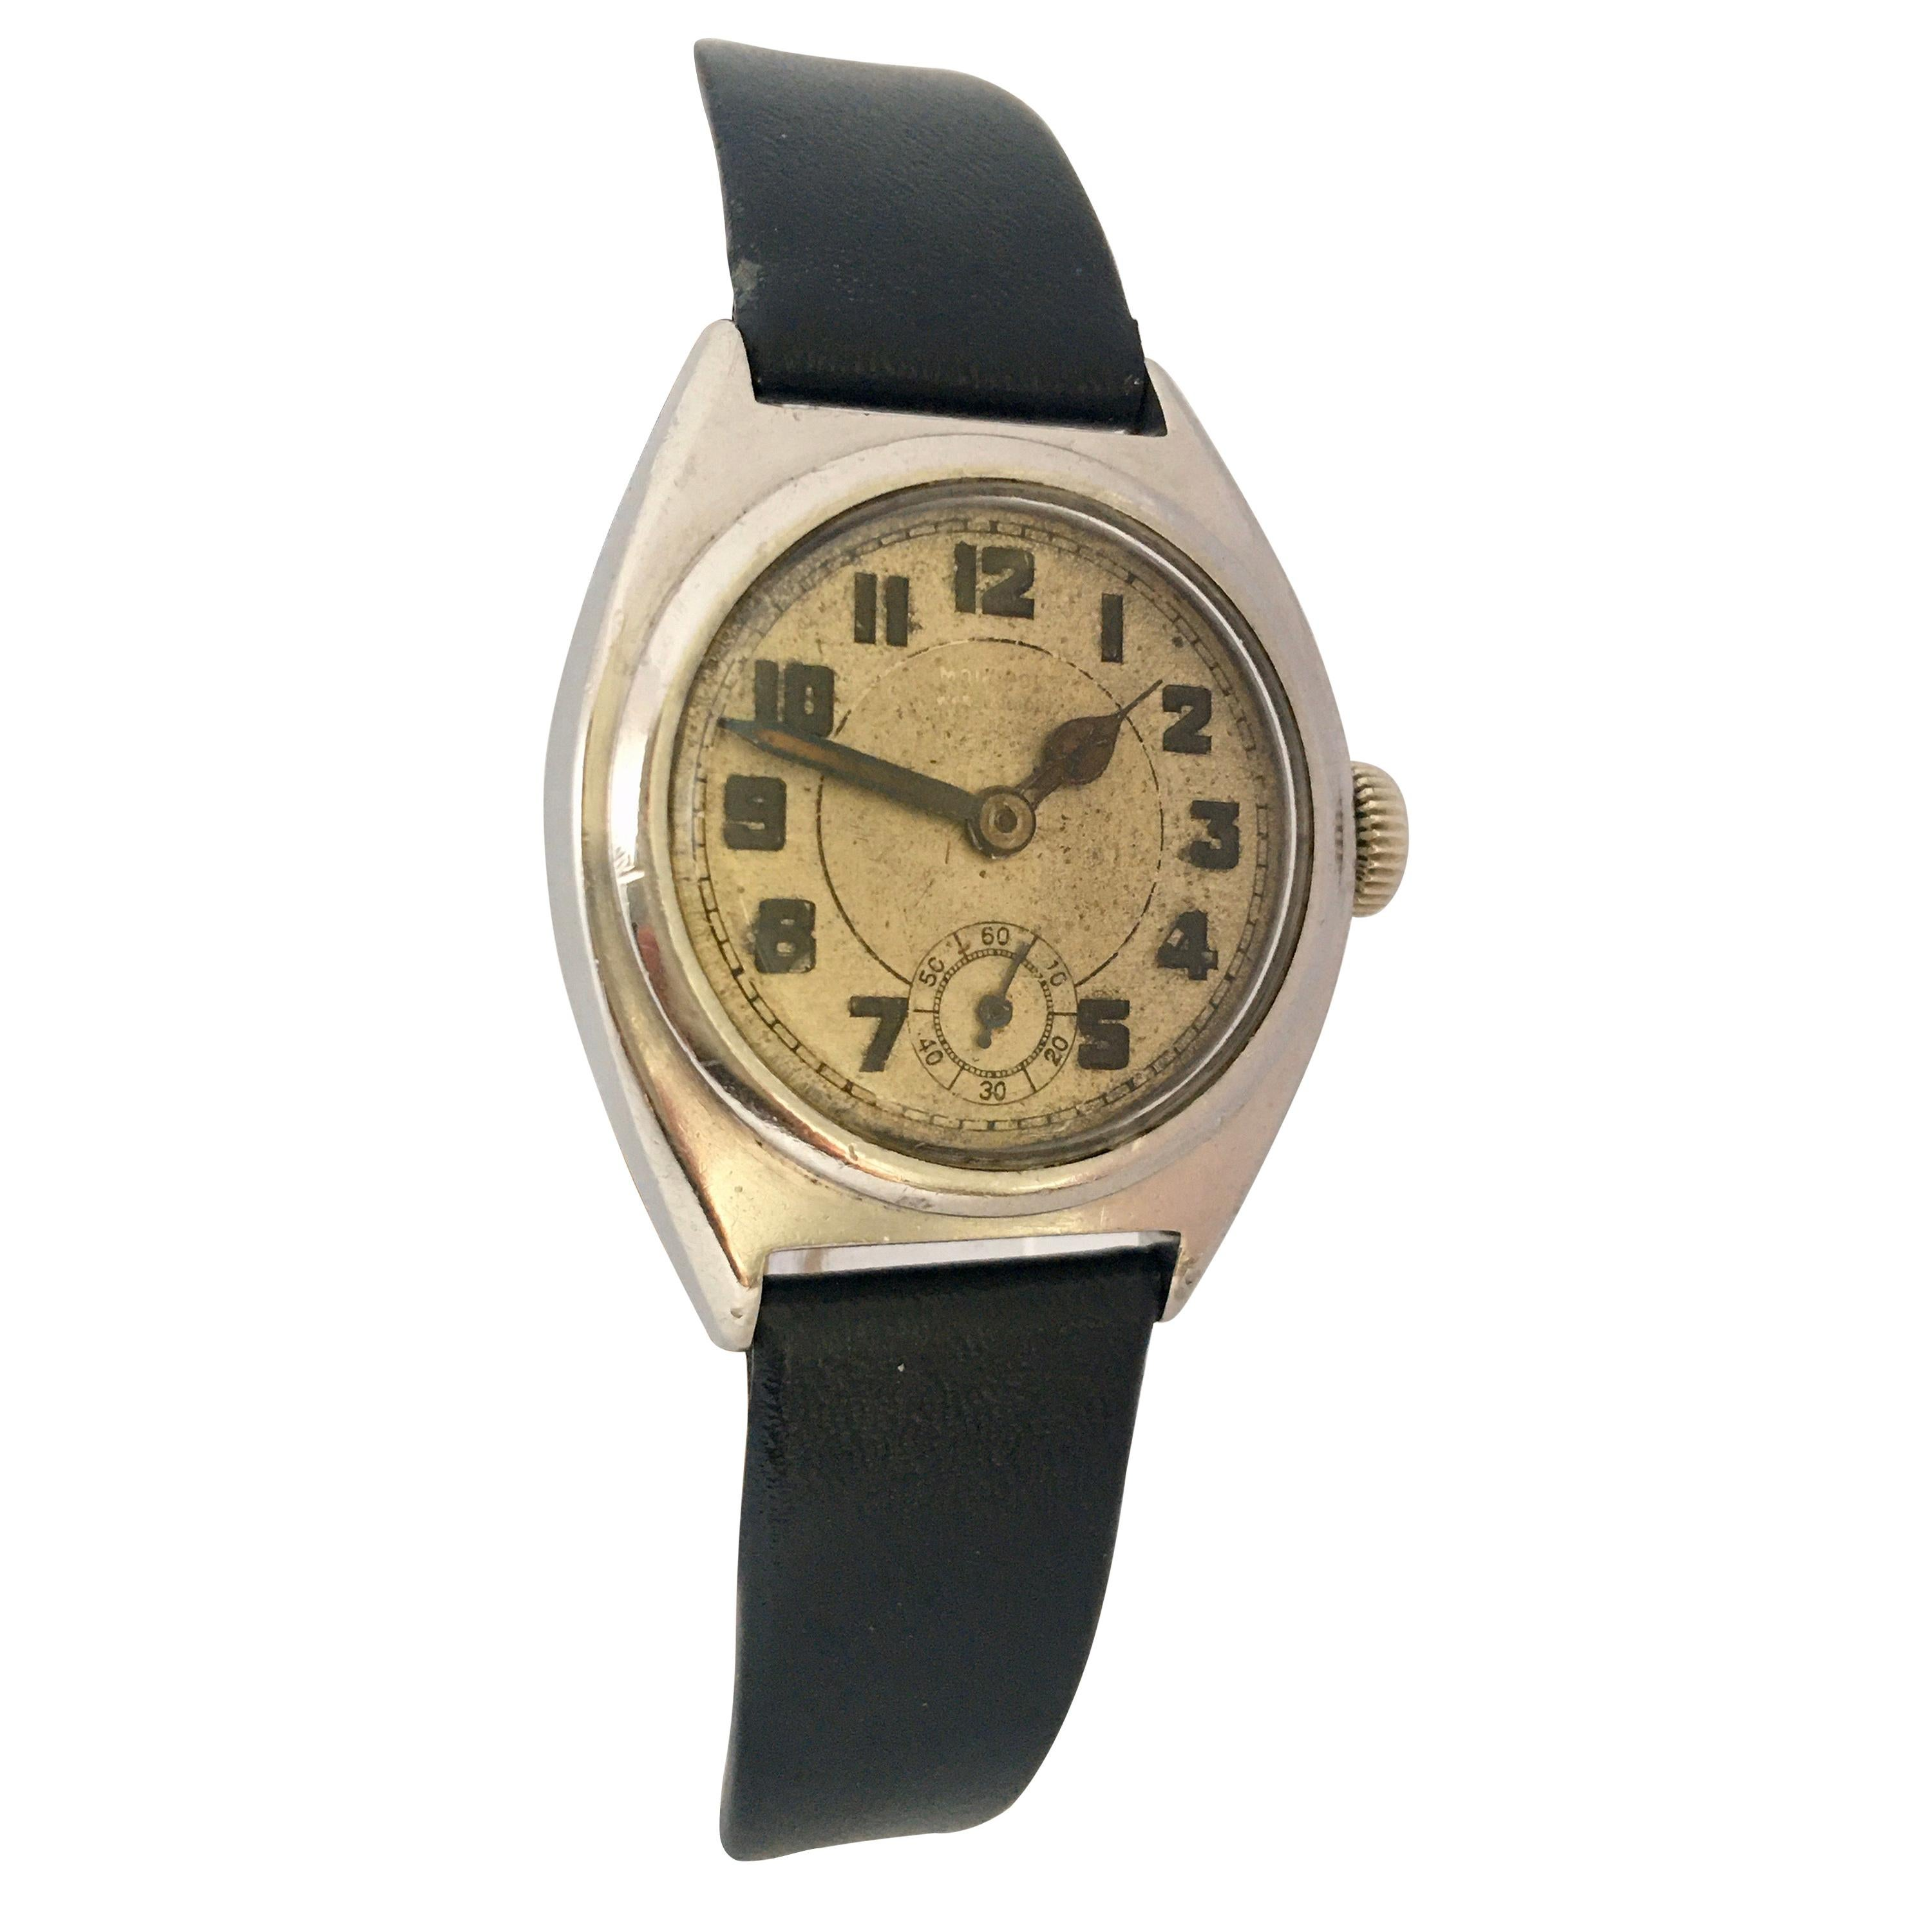 Vintage 1930s Stainless Steel Mechanical Watch